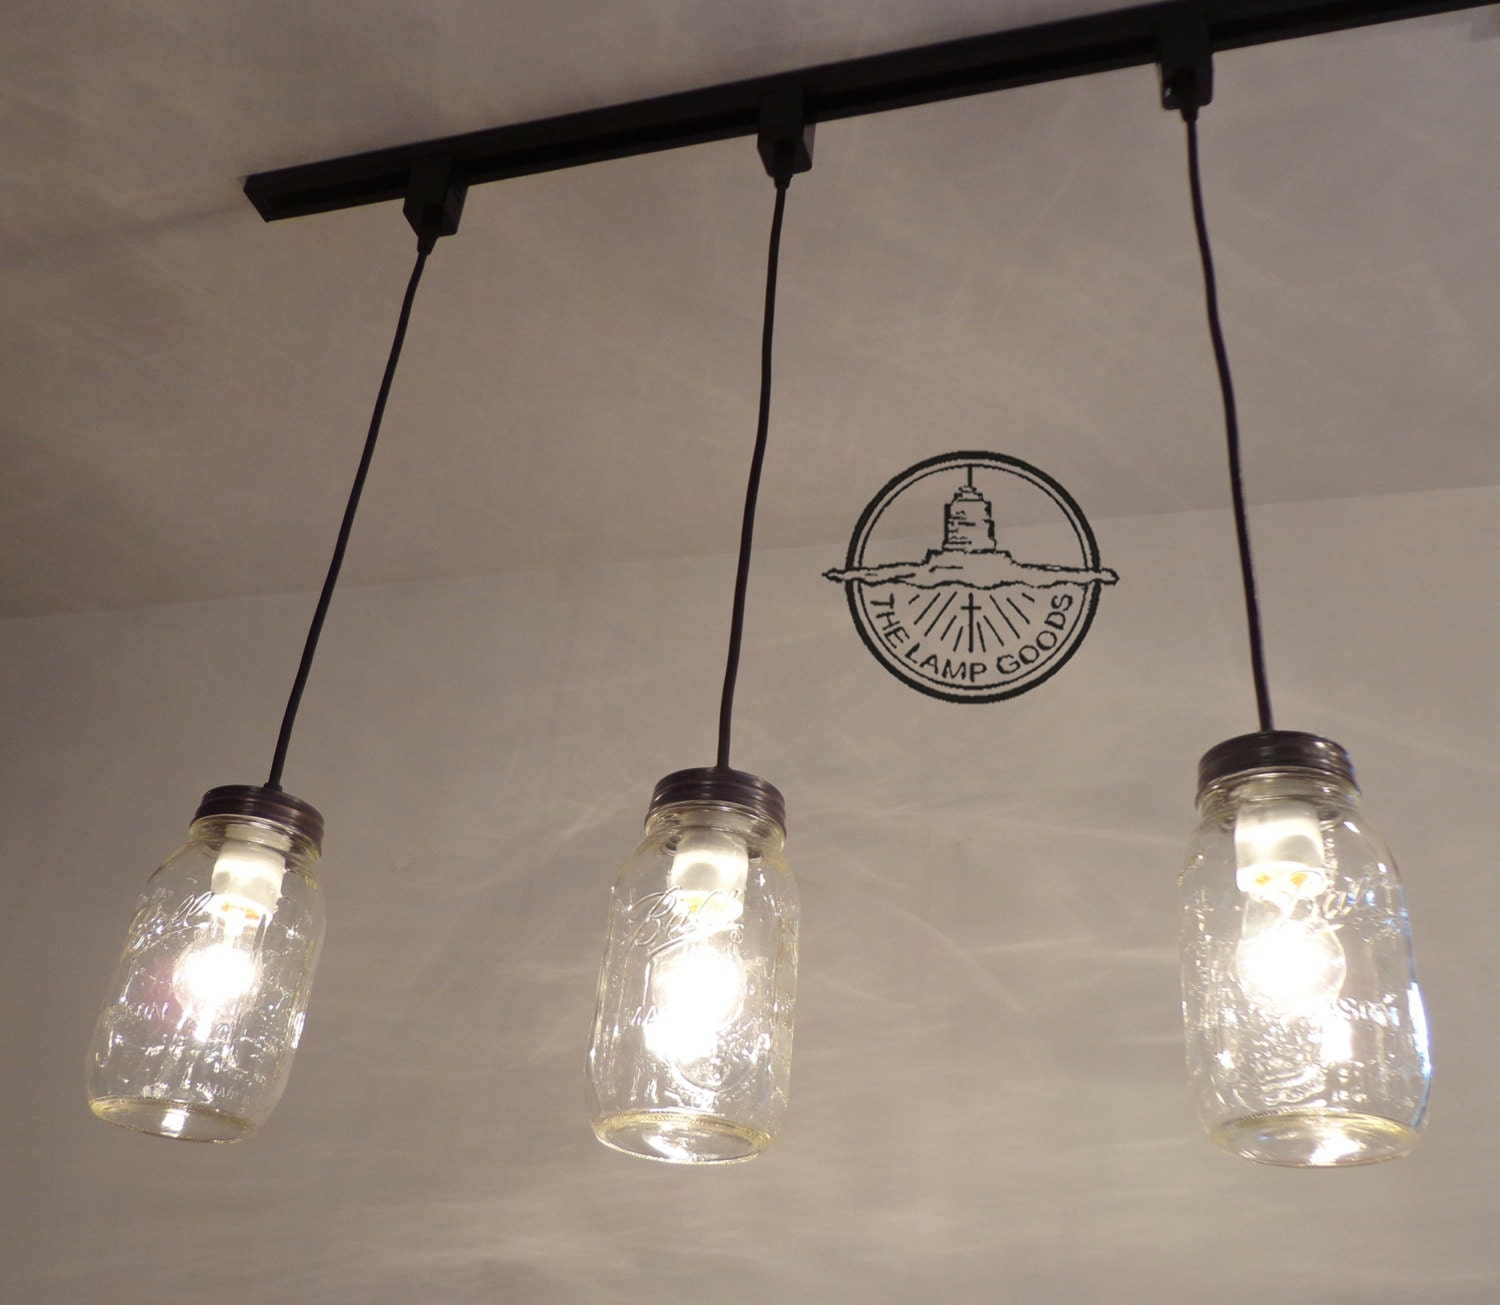 Mason jar track lighting pendant new quart chandelier zoom arubaitofo Gallery